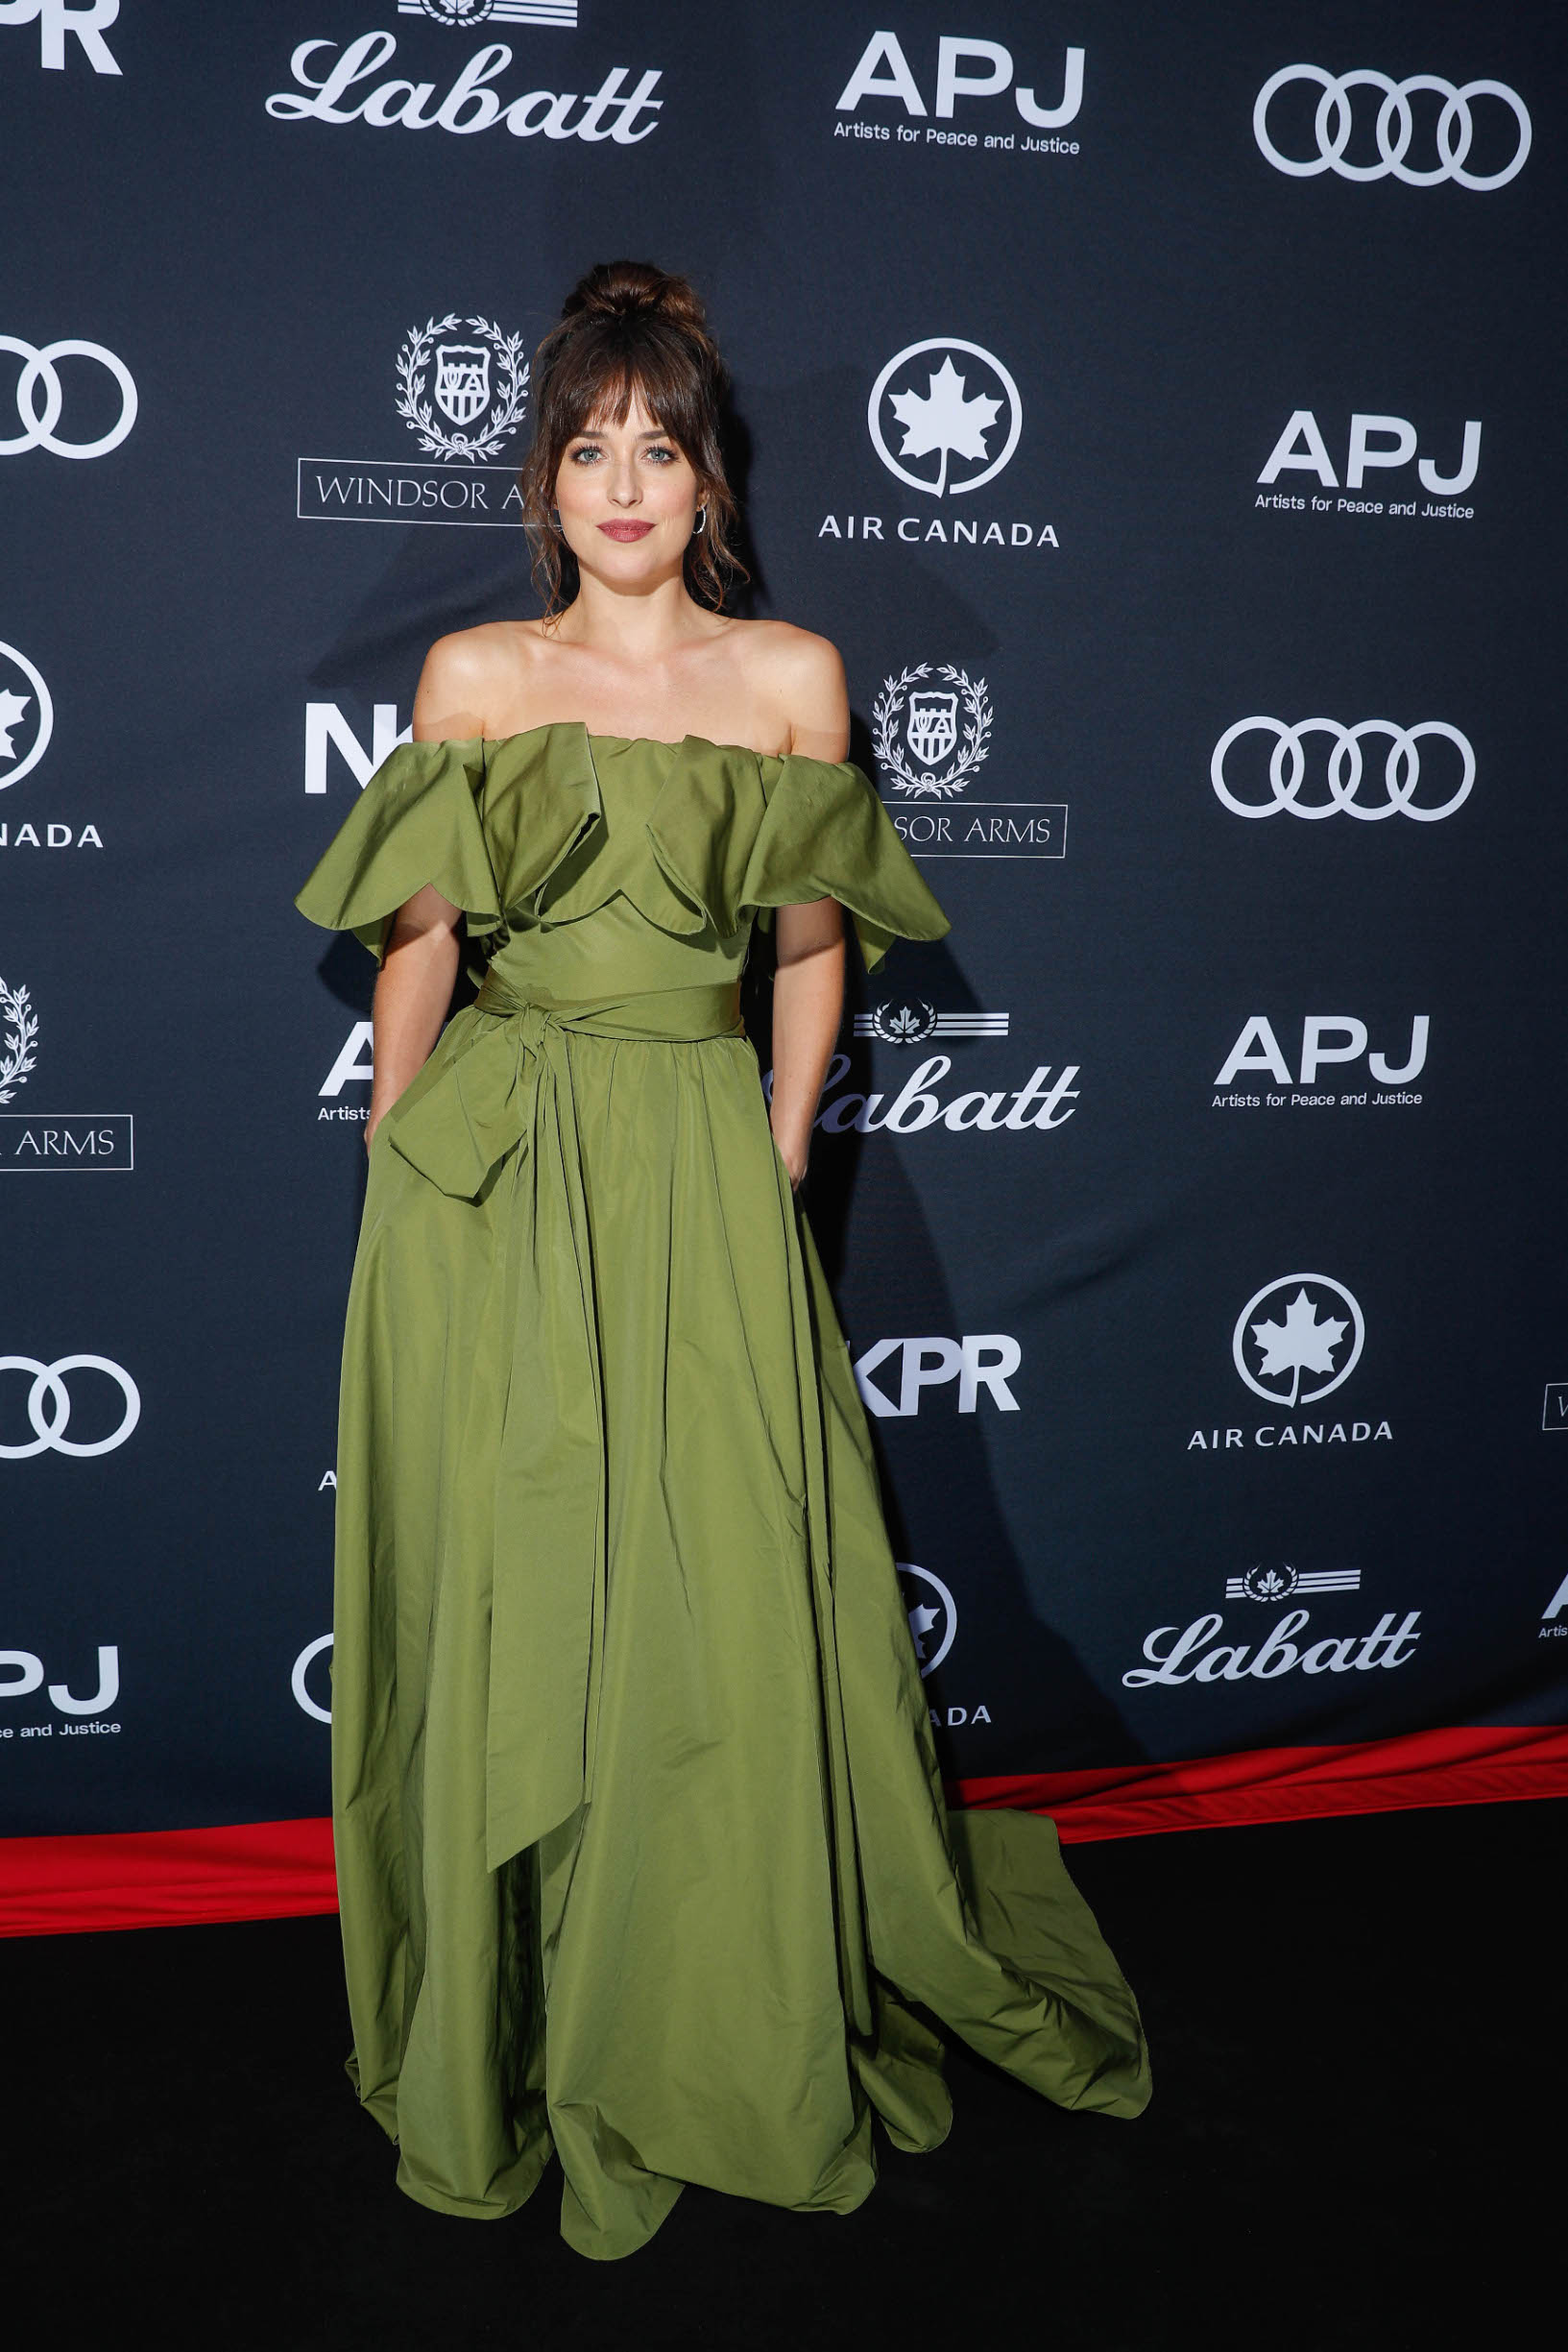 TORONTO, ONTARIO - SEPTEMBER 07: Dakota Johnson attends Audi Canada Co-hosts The Artist For Peace And Justice Festival ( APJ ) Gala During The Toronto International Film Festival at Windsor Arms Hotel on September 07, 2019 in Toronto, Canada. (Photo by Brian de Rivera Simon/Getty Images for Audi Canada )